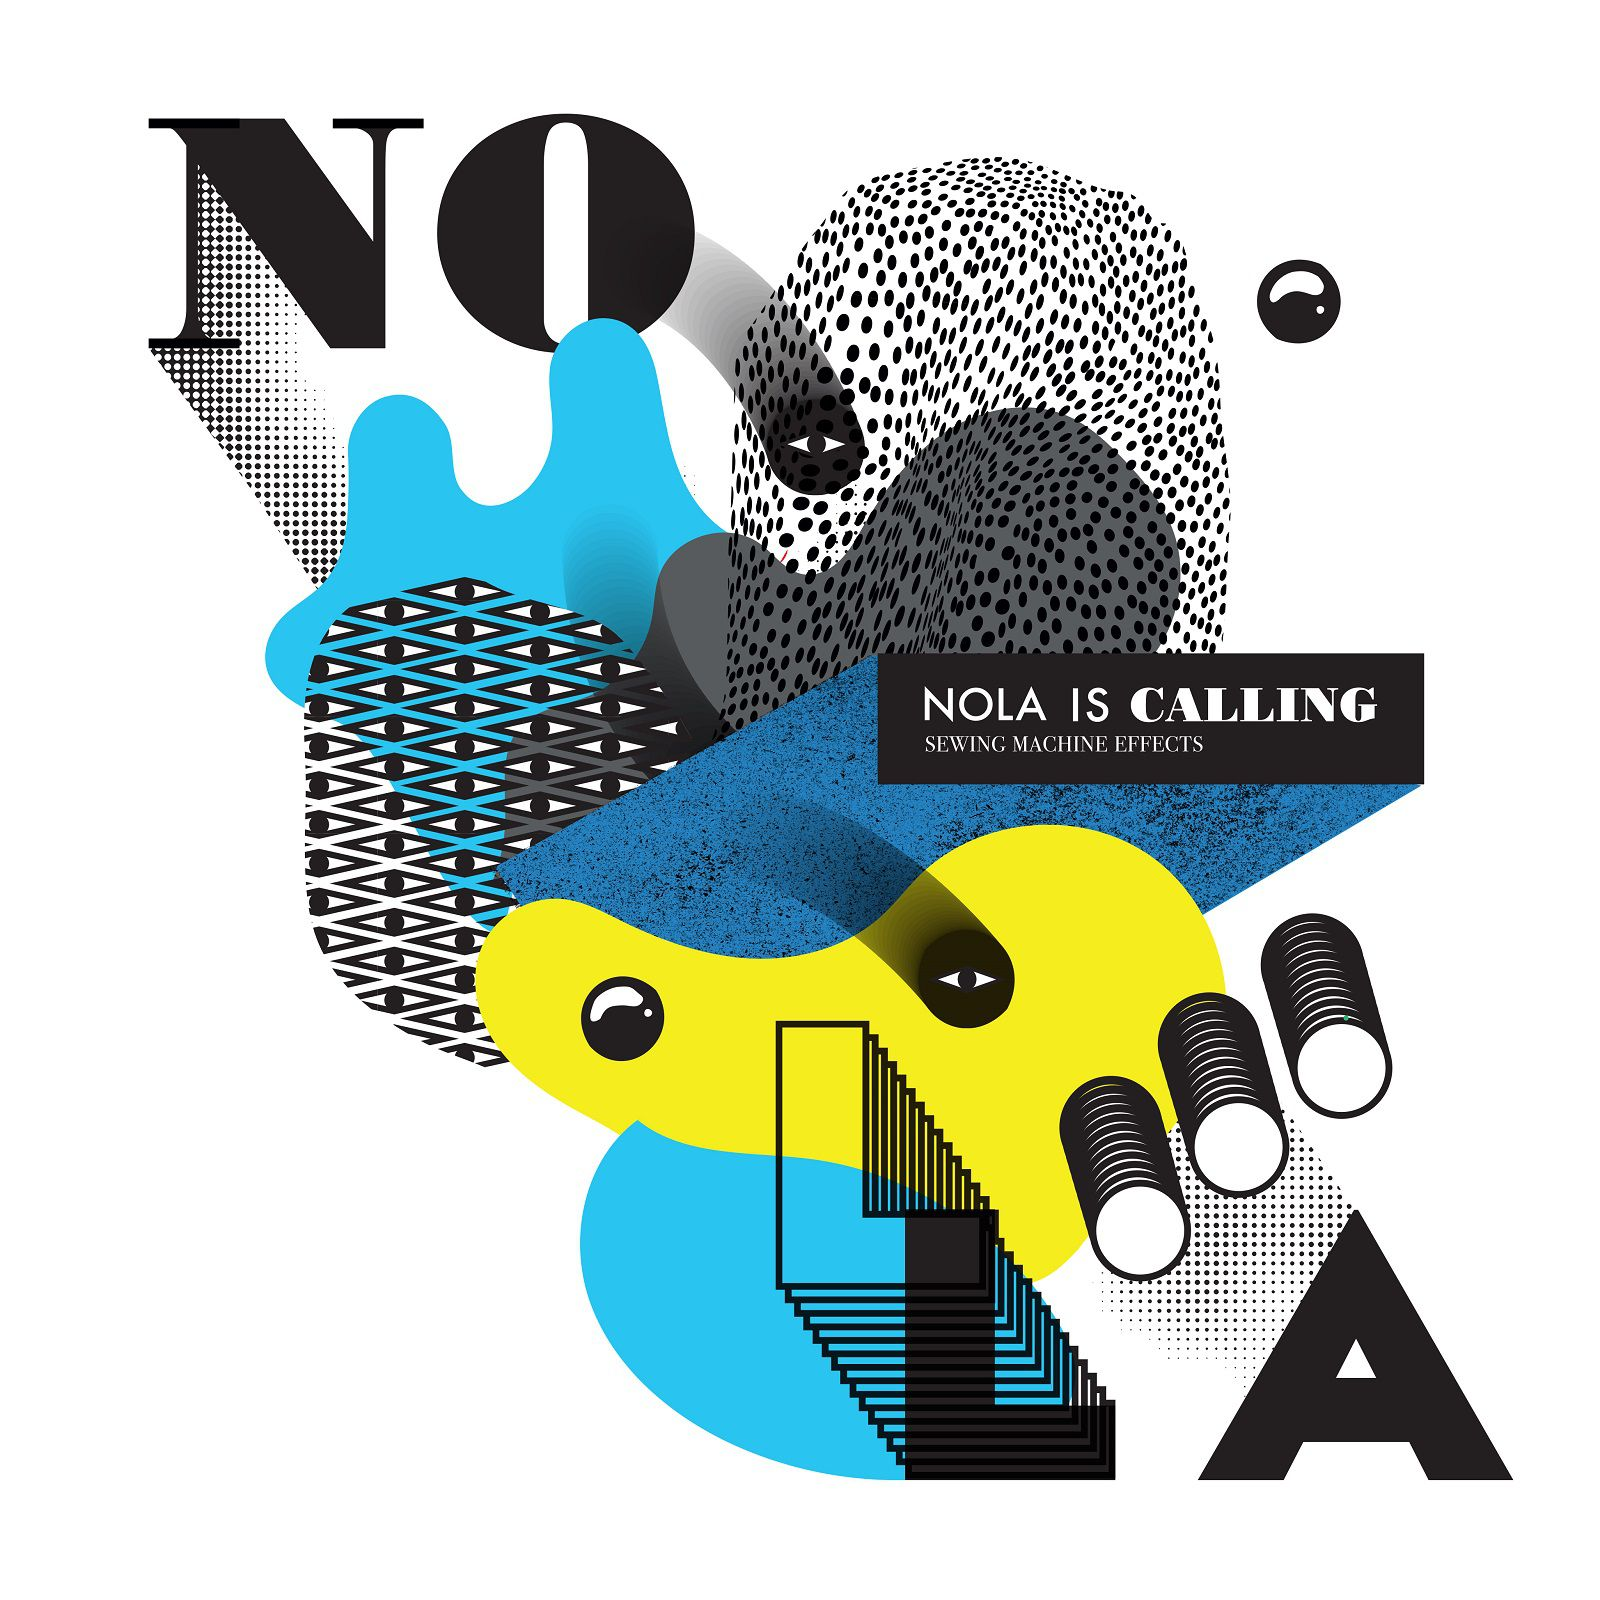 Sewing Machine Effects - Nola is calling